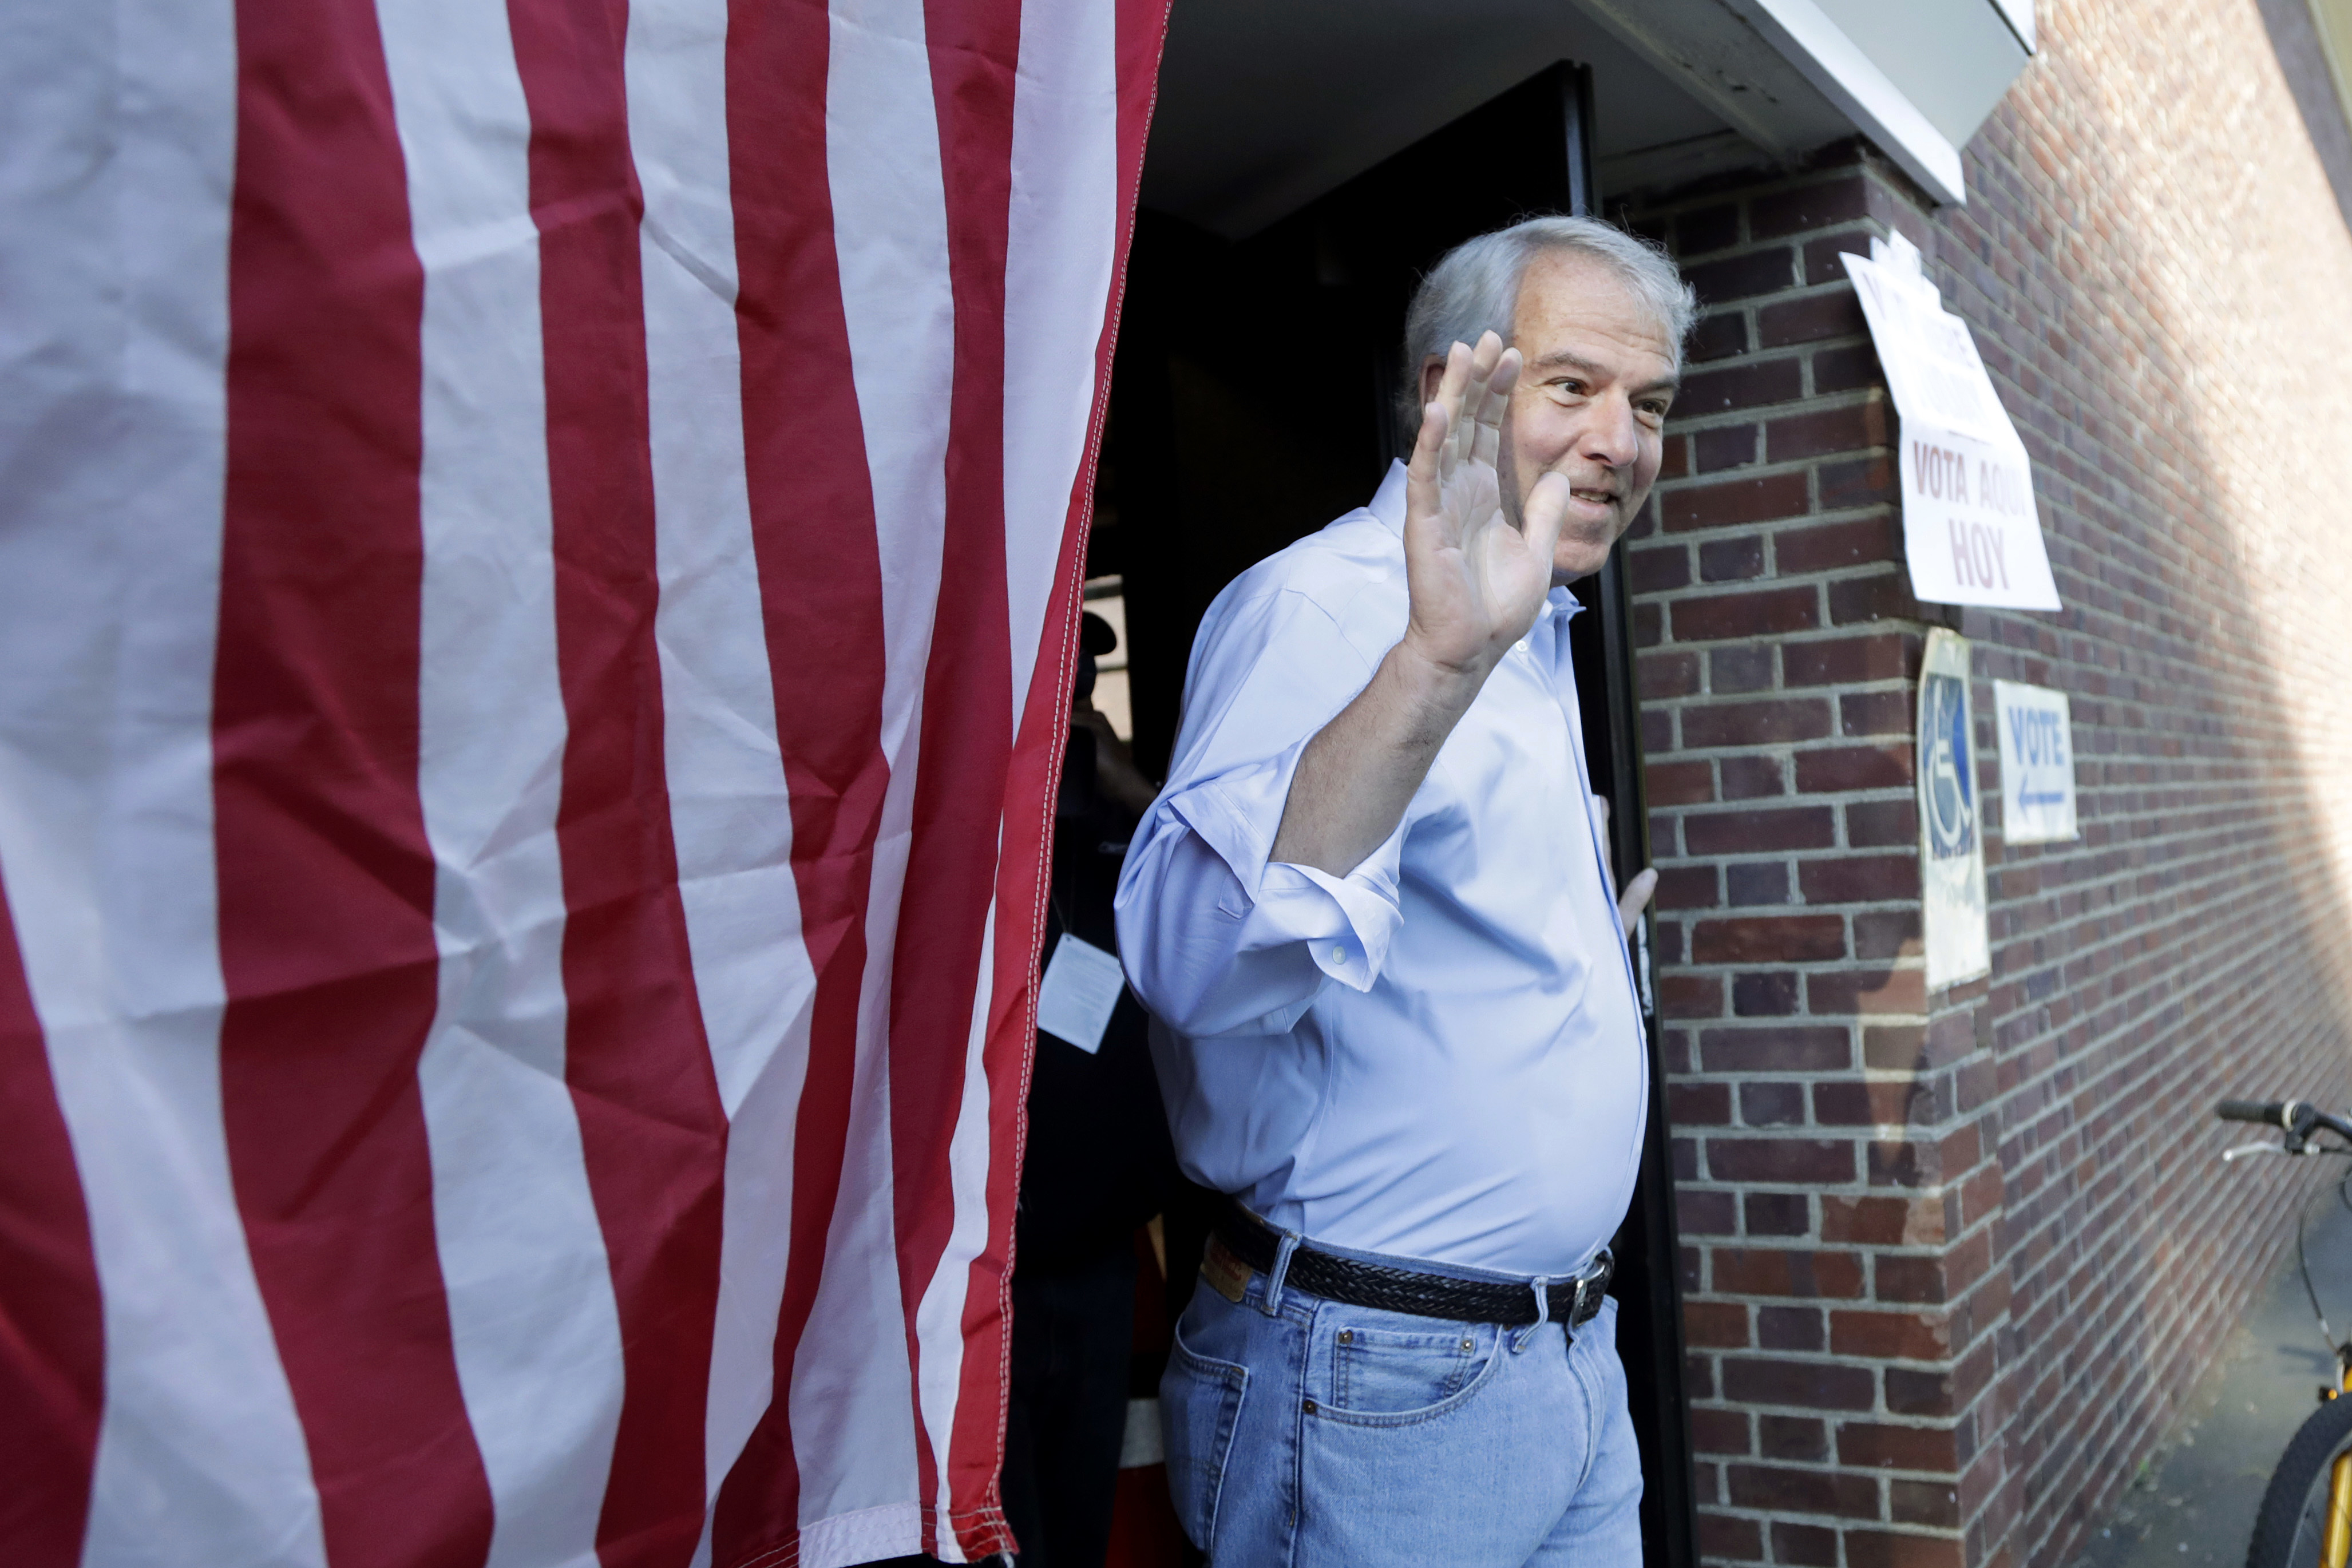 Bob Hugin, a Republican running for U.S. Senate, gestures while exiting his polling place after casting his vote in the New Jersey primary election Tuesday.